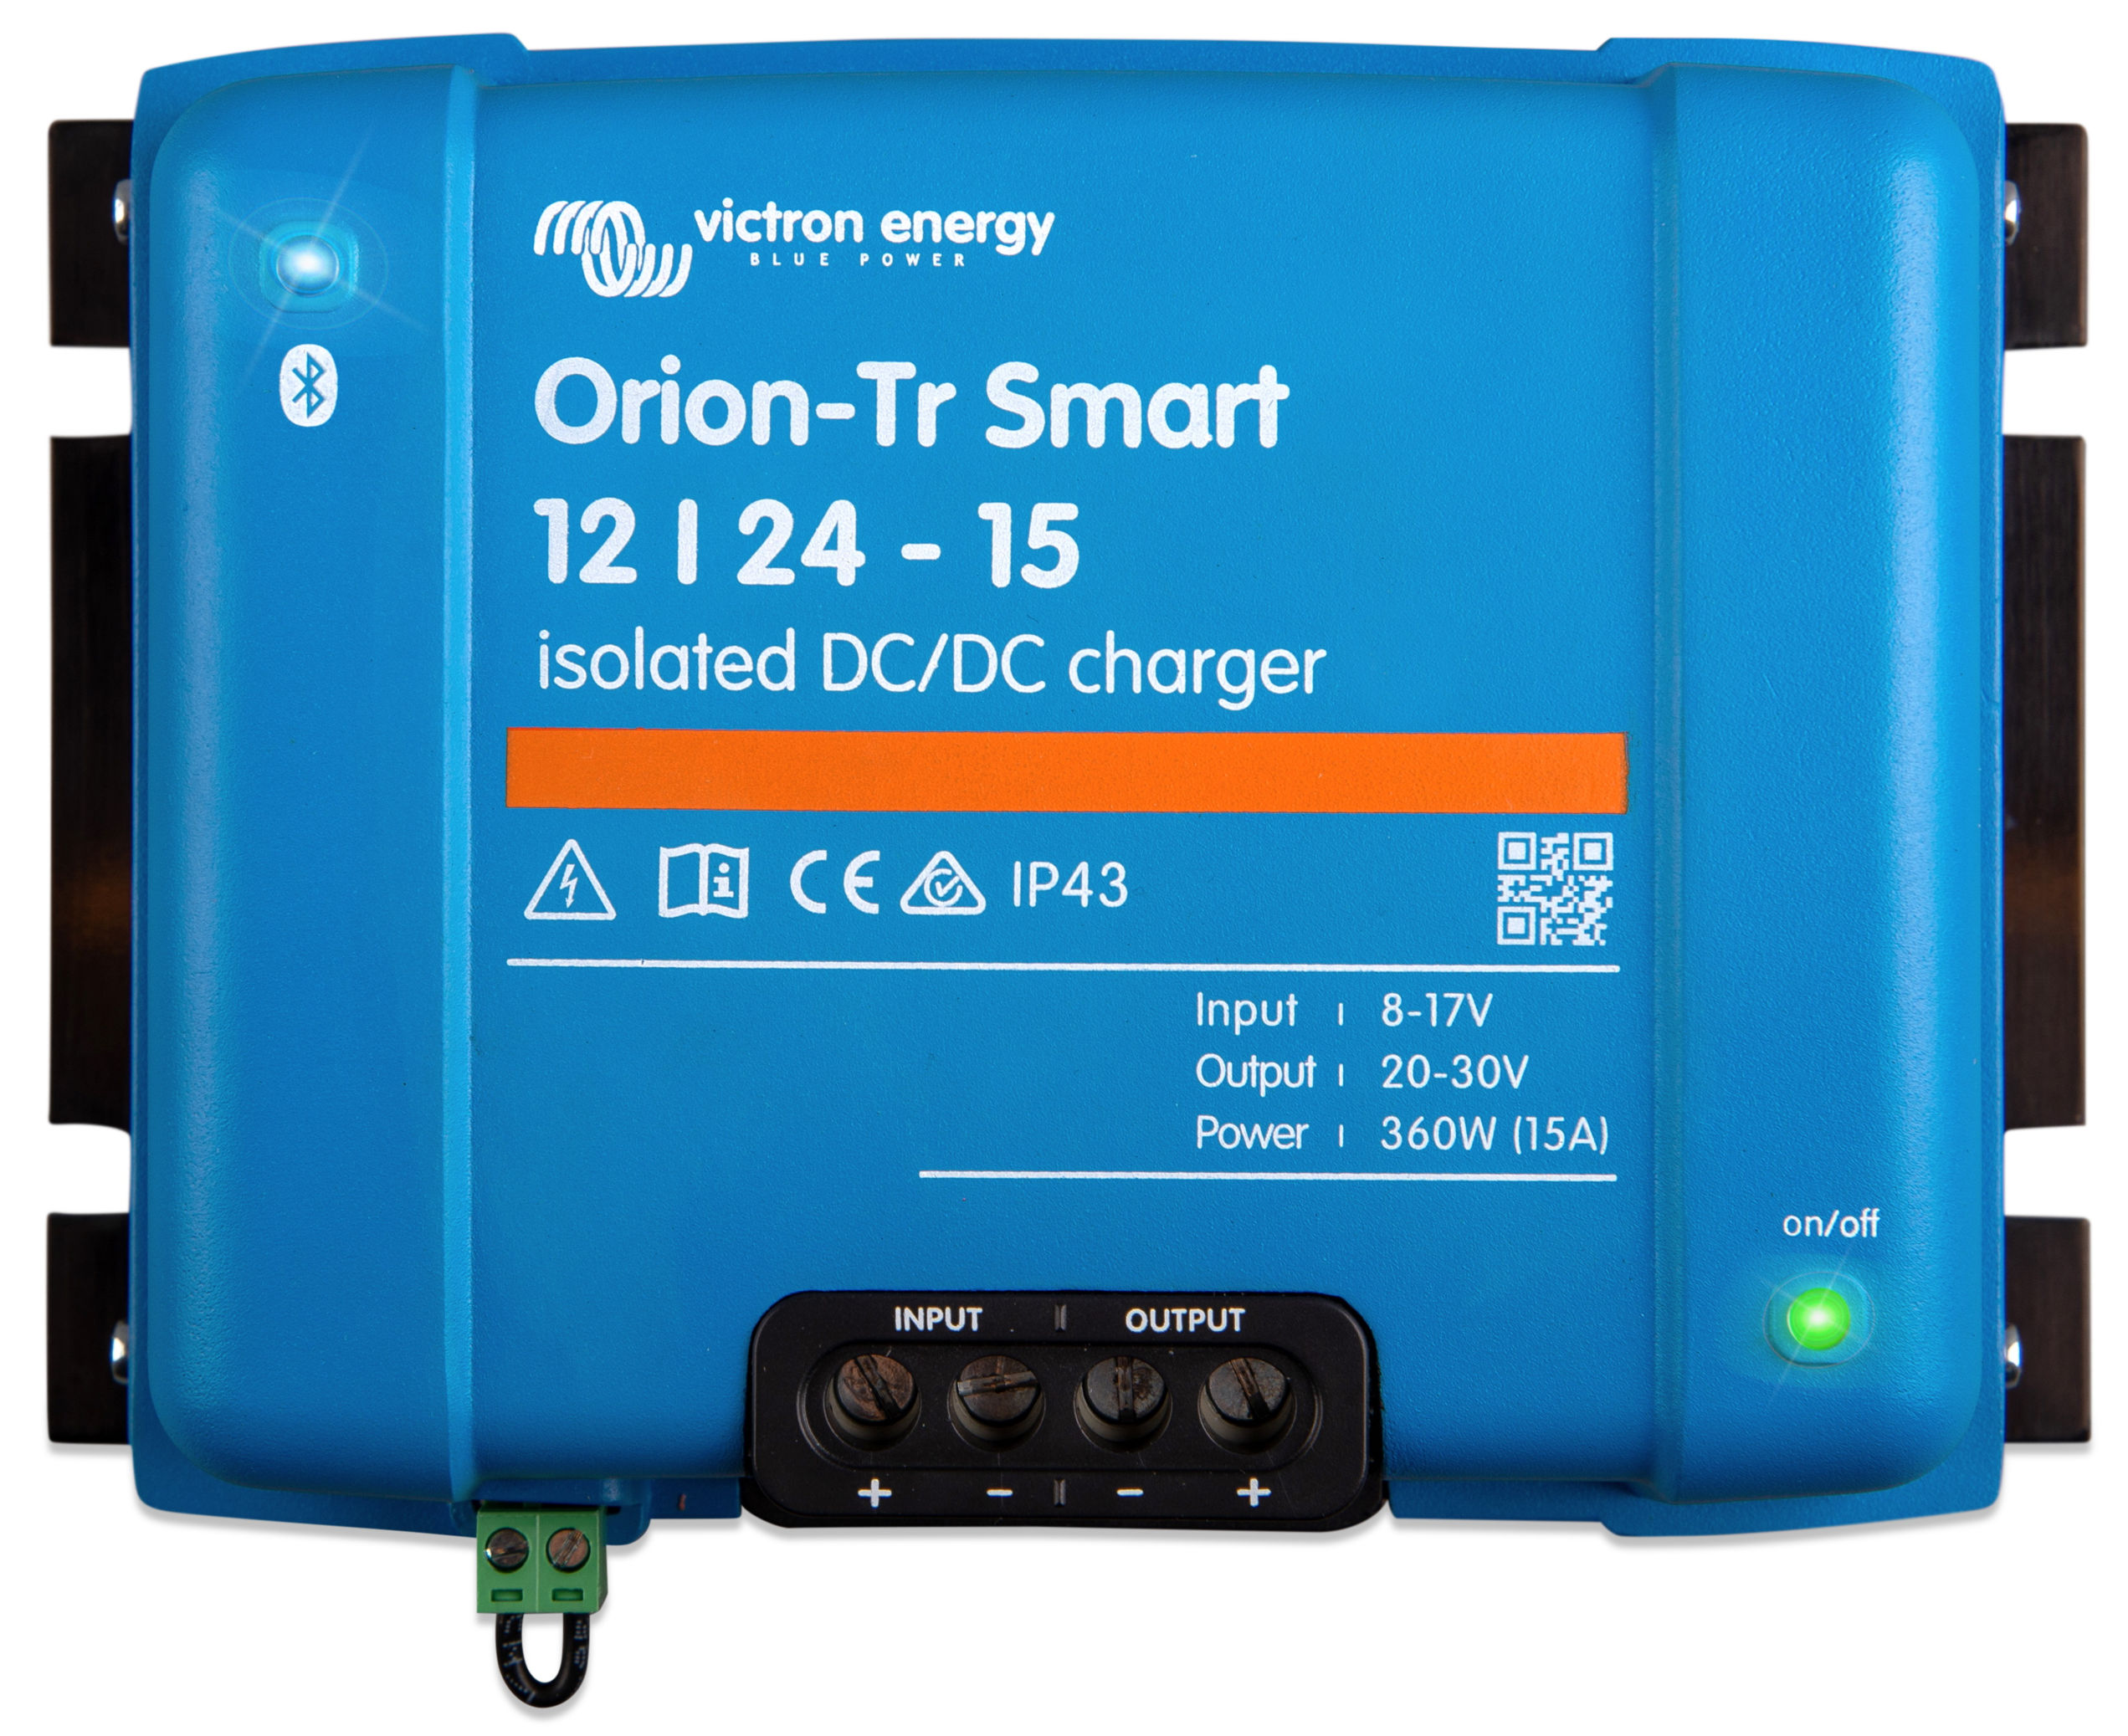 DC-DC chargers, Victron introduces Orion TR Smart series - Panbo on